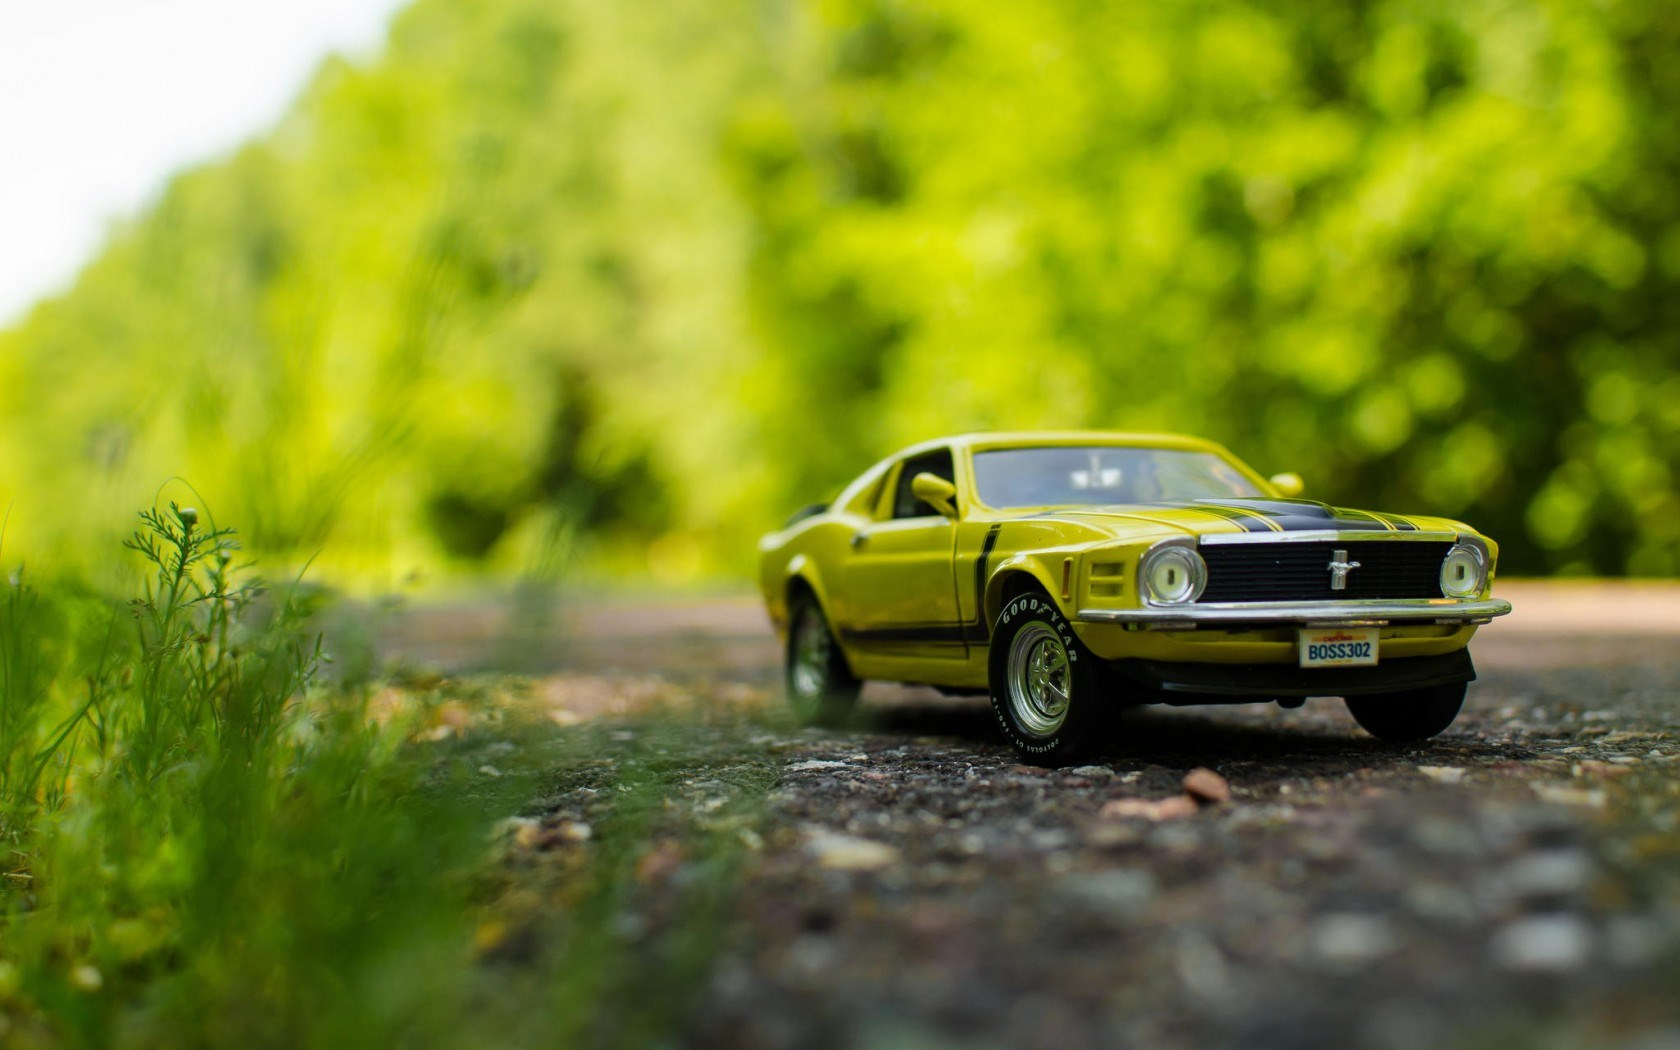 12 outstanding hd toy car wallpapers - hdwallsource